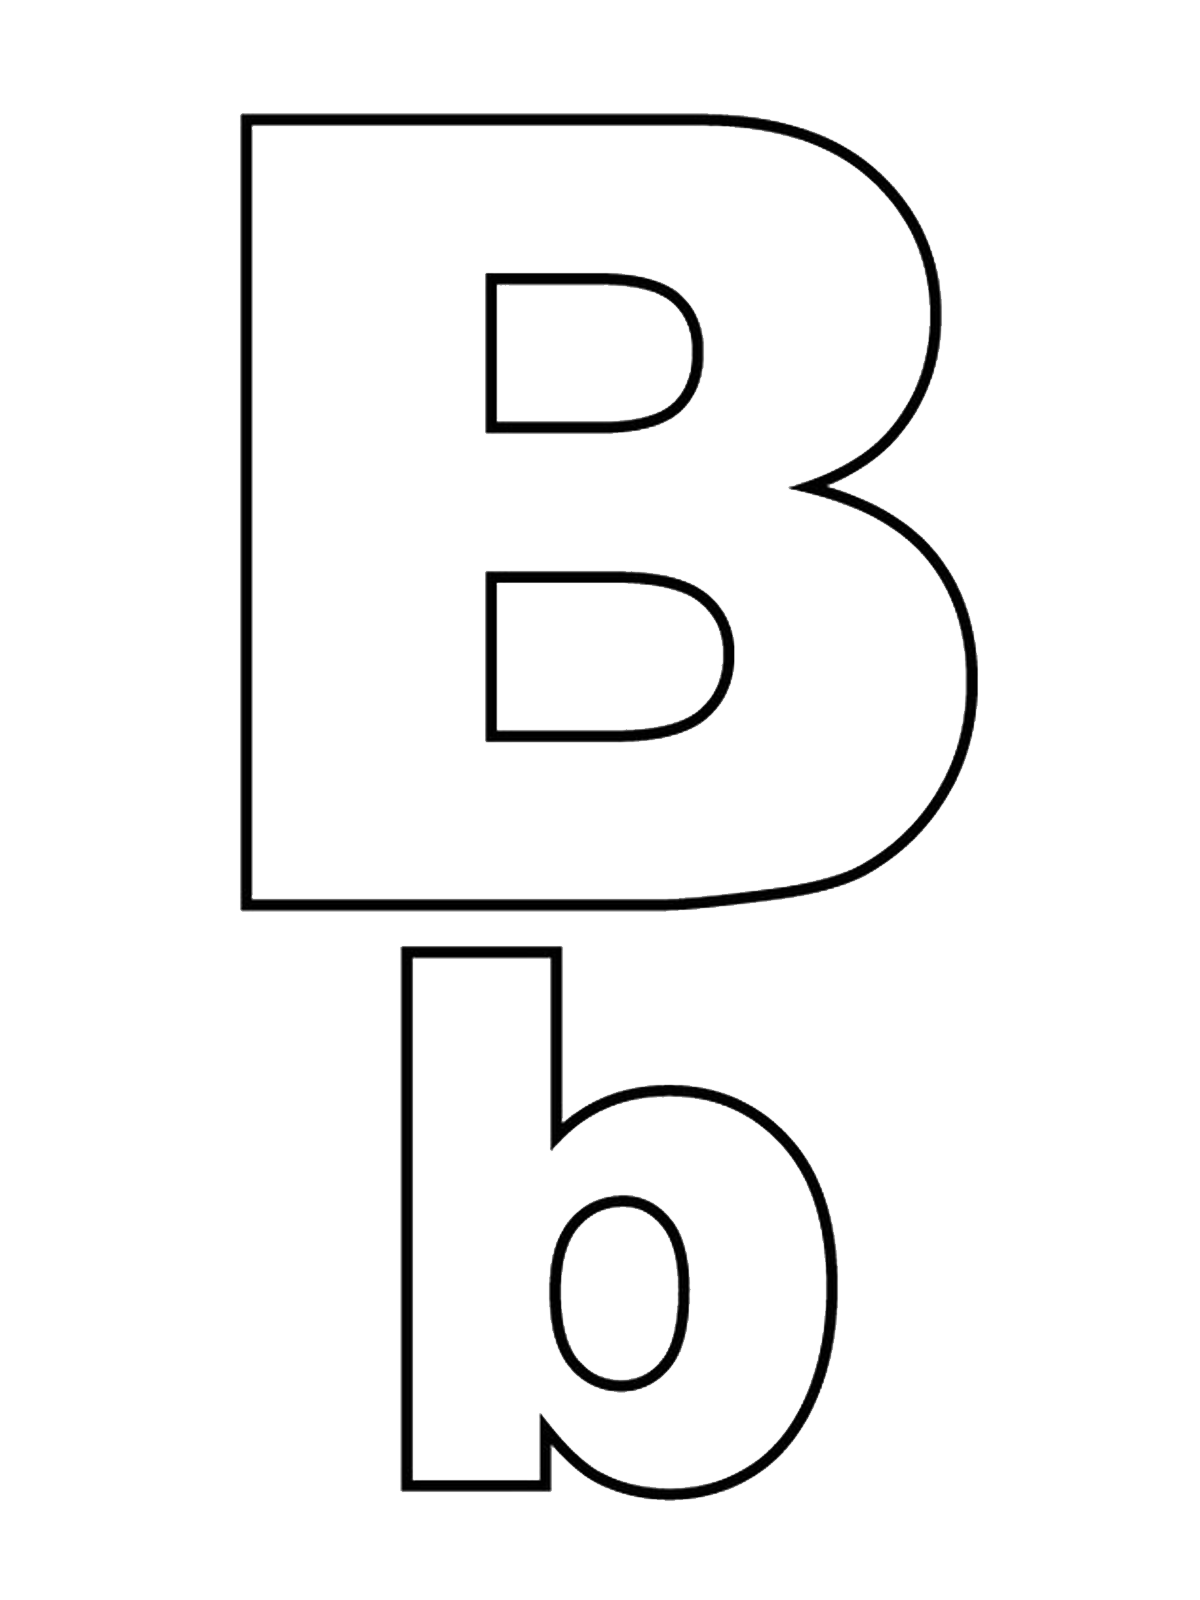 Letters and numbers - Letter B capital letters and lowercase